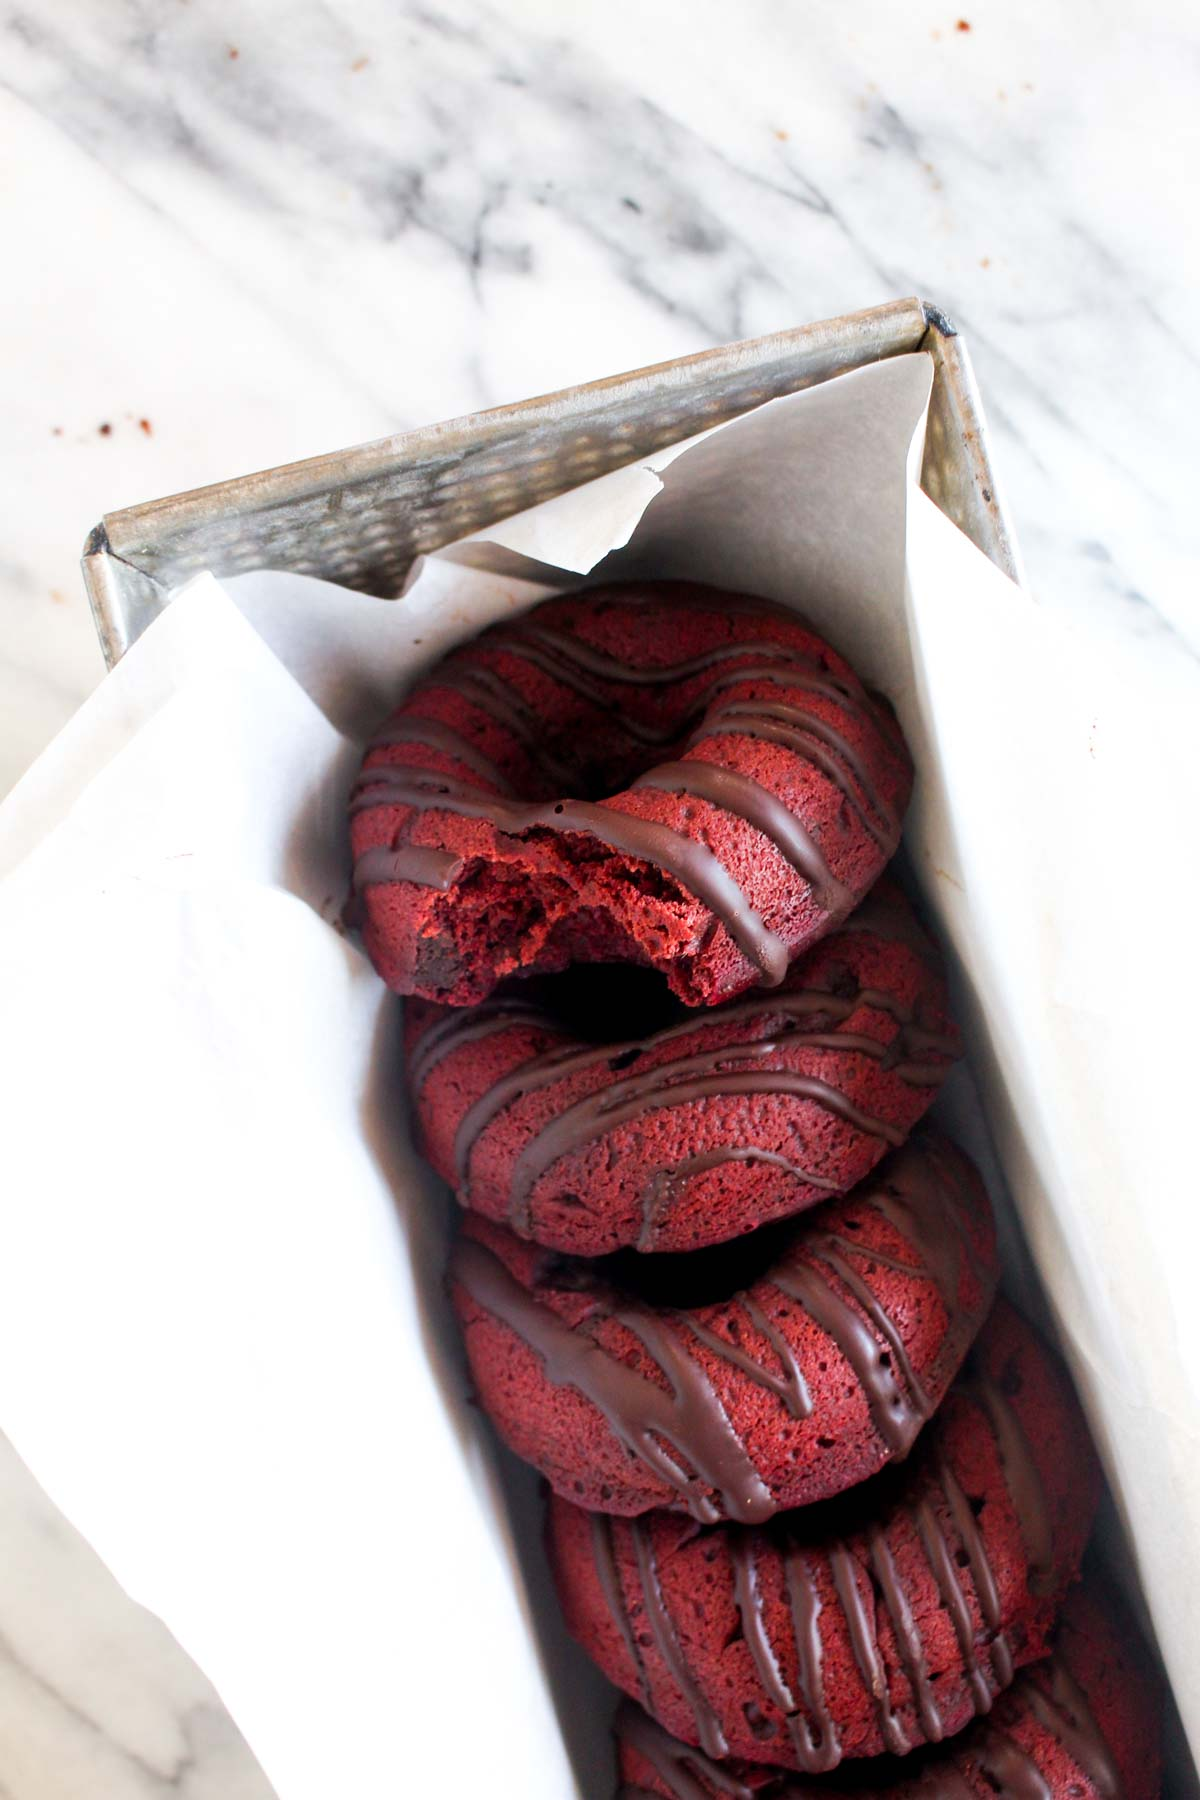 These Baked Double Chocolate Beet Donuts might sound strange, but they are deeply chocolaty, rich and have the perfect soft texture. This healthy dessert recipe is vegan and gluten-free. | CatchingSeeds.com